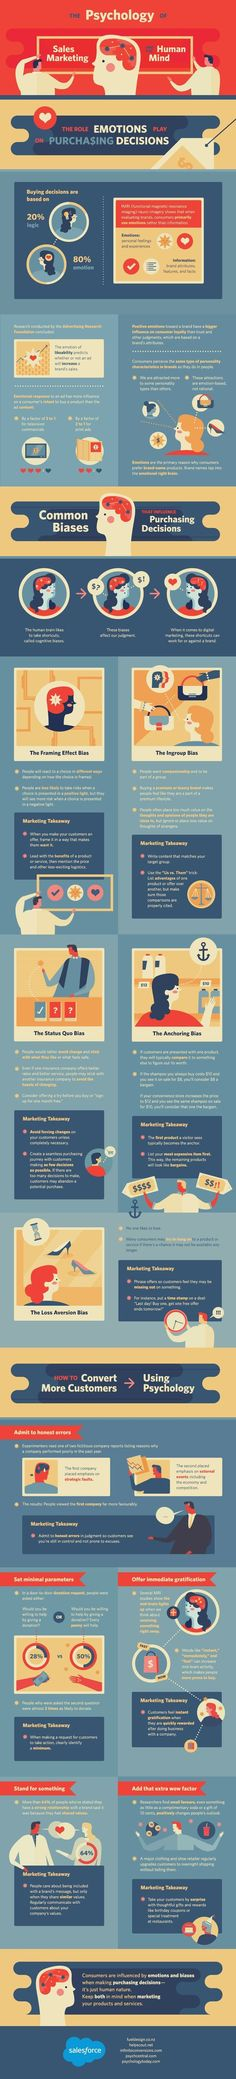 The Psychology of Sales Marketing and the Human Mind #infographic #Sales #Marketing